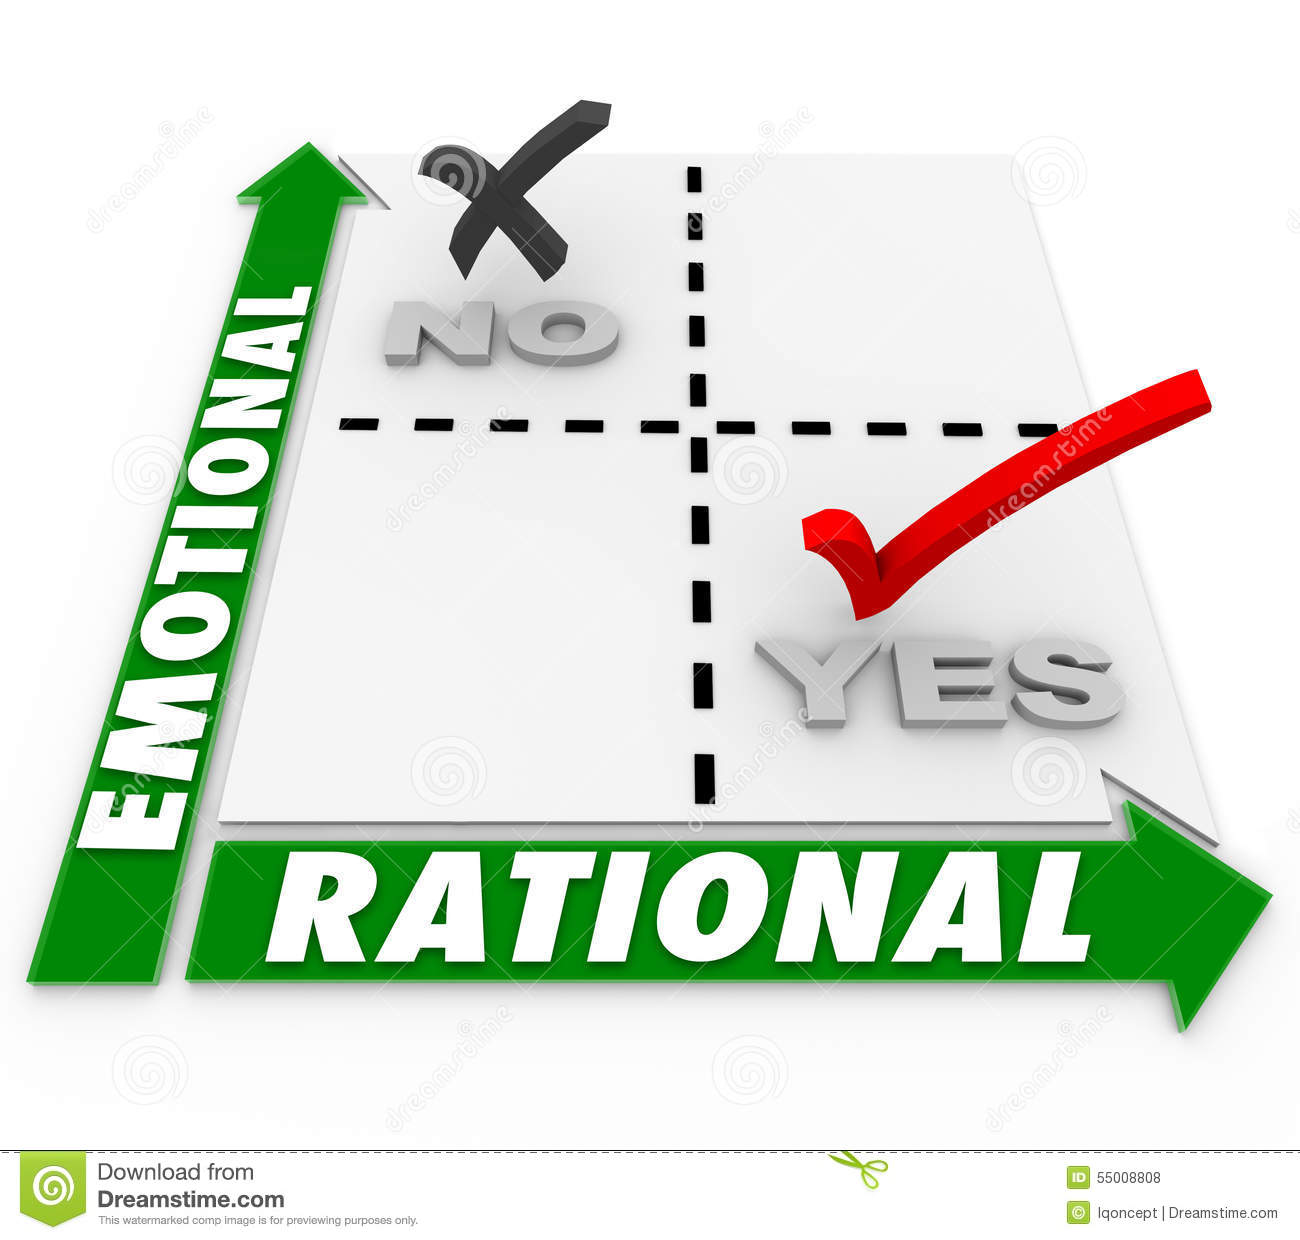 Mind and heart rational decisions emotions